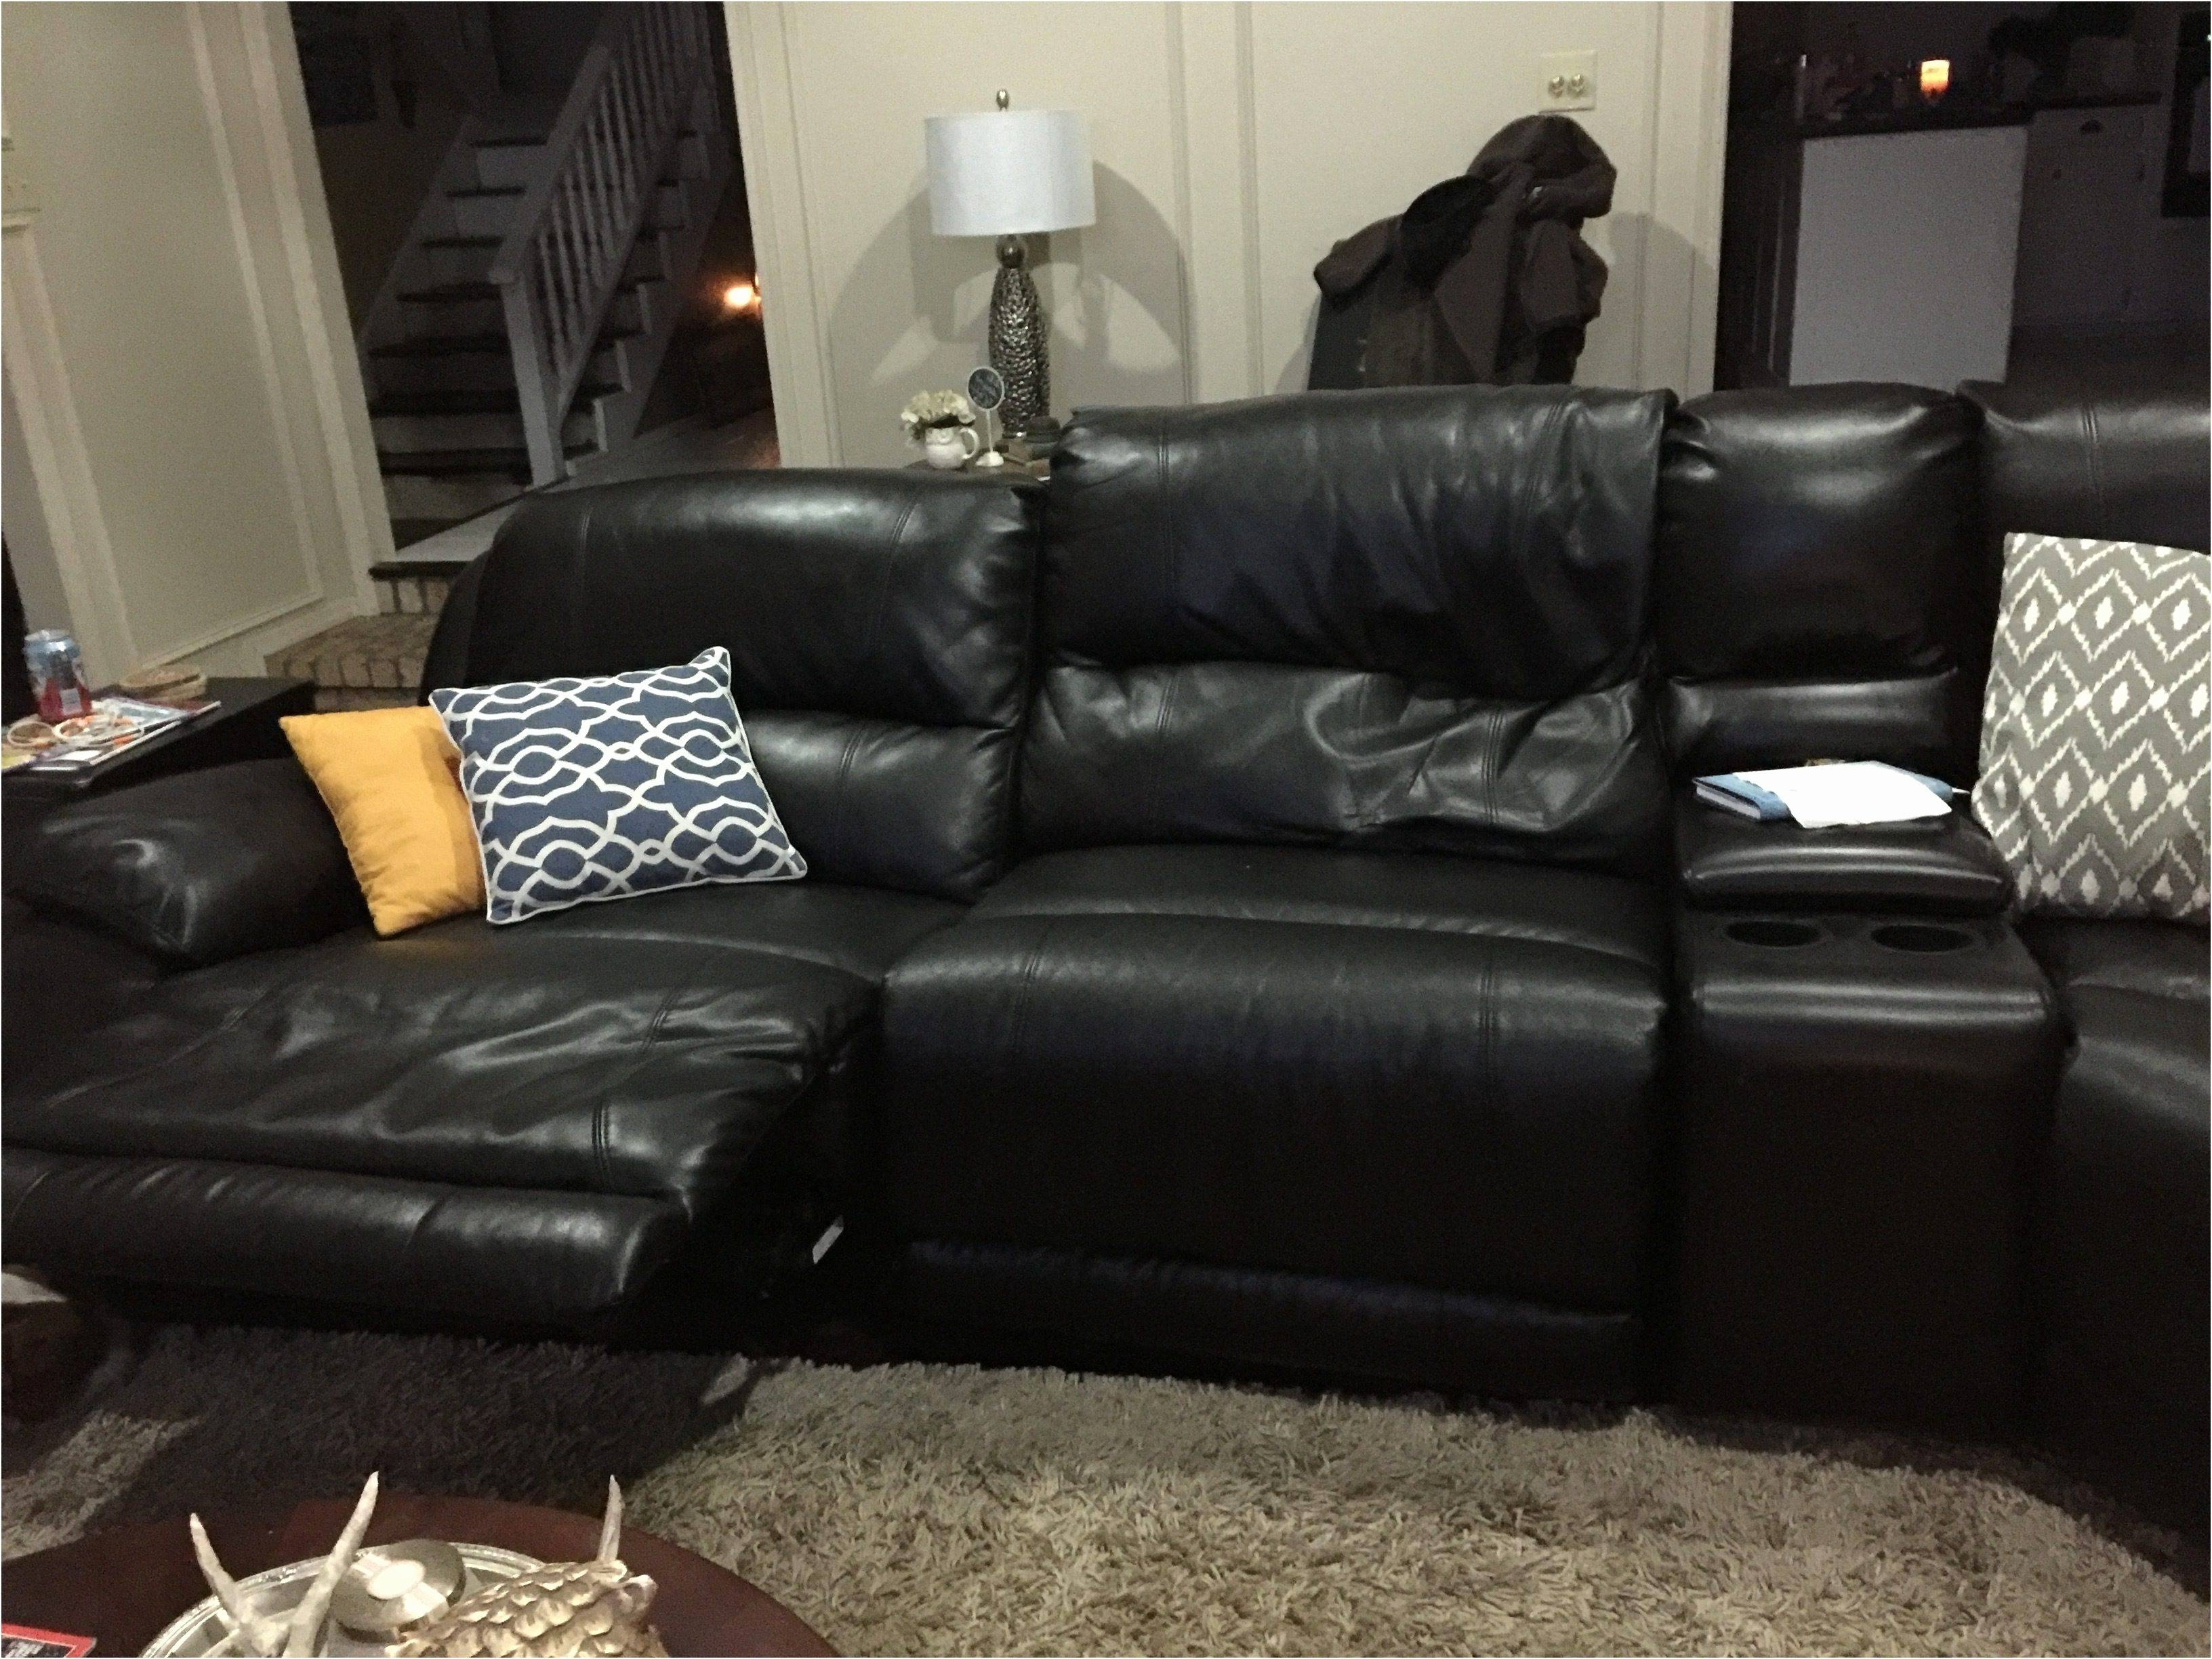 Best Of Chesterfield Sofa Craigslist Luxury - Sofa Furnitures with Craigslist Chesterfield Sofas (Image 1 of 15)